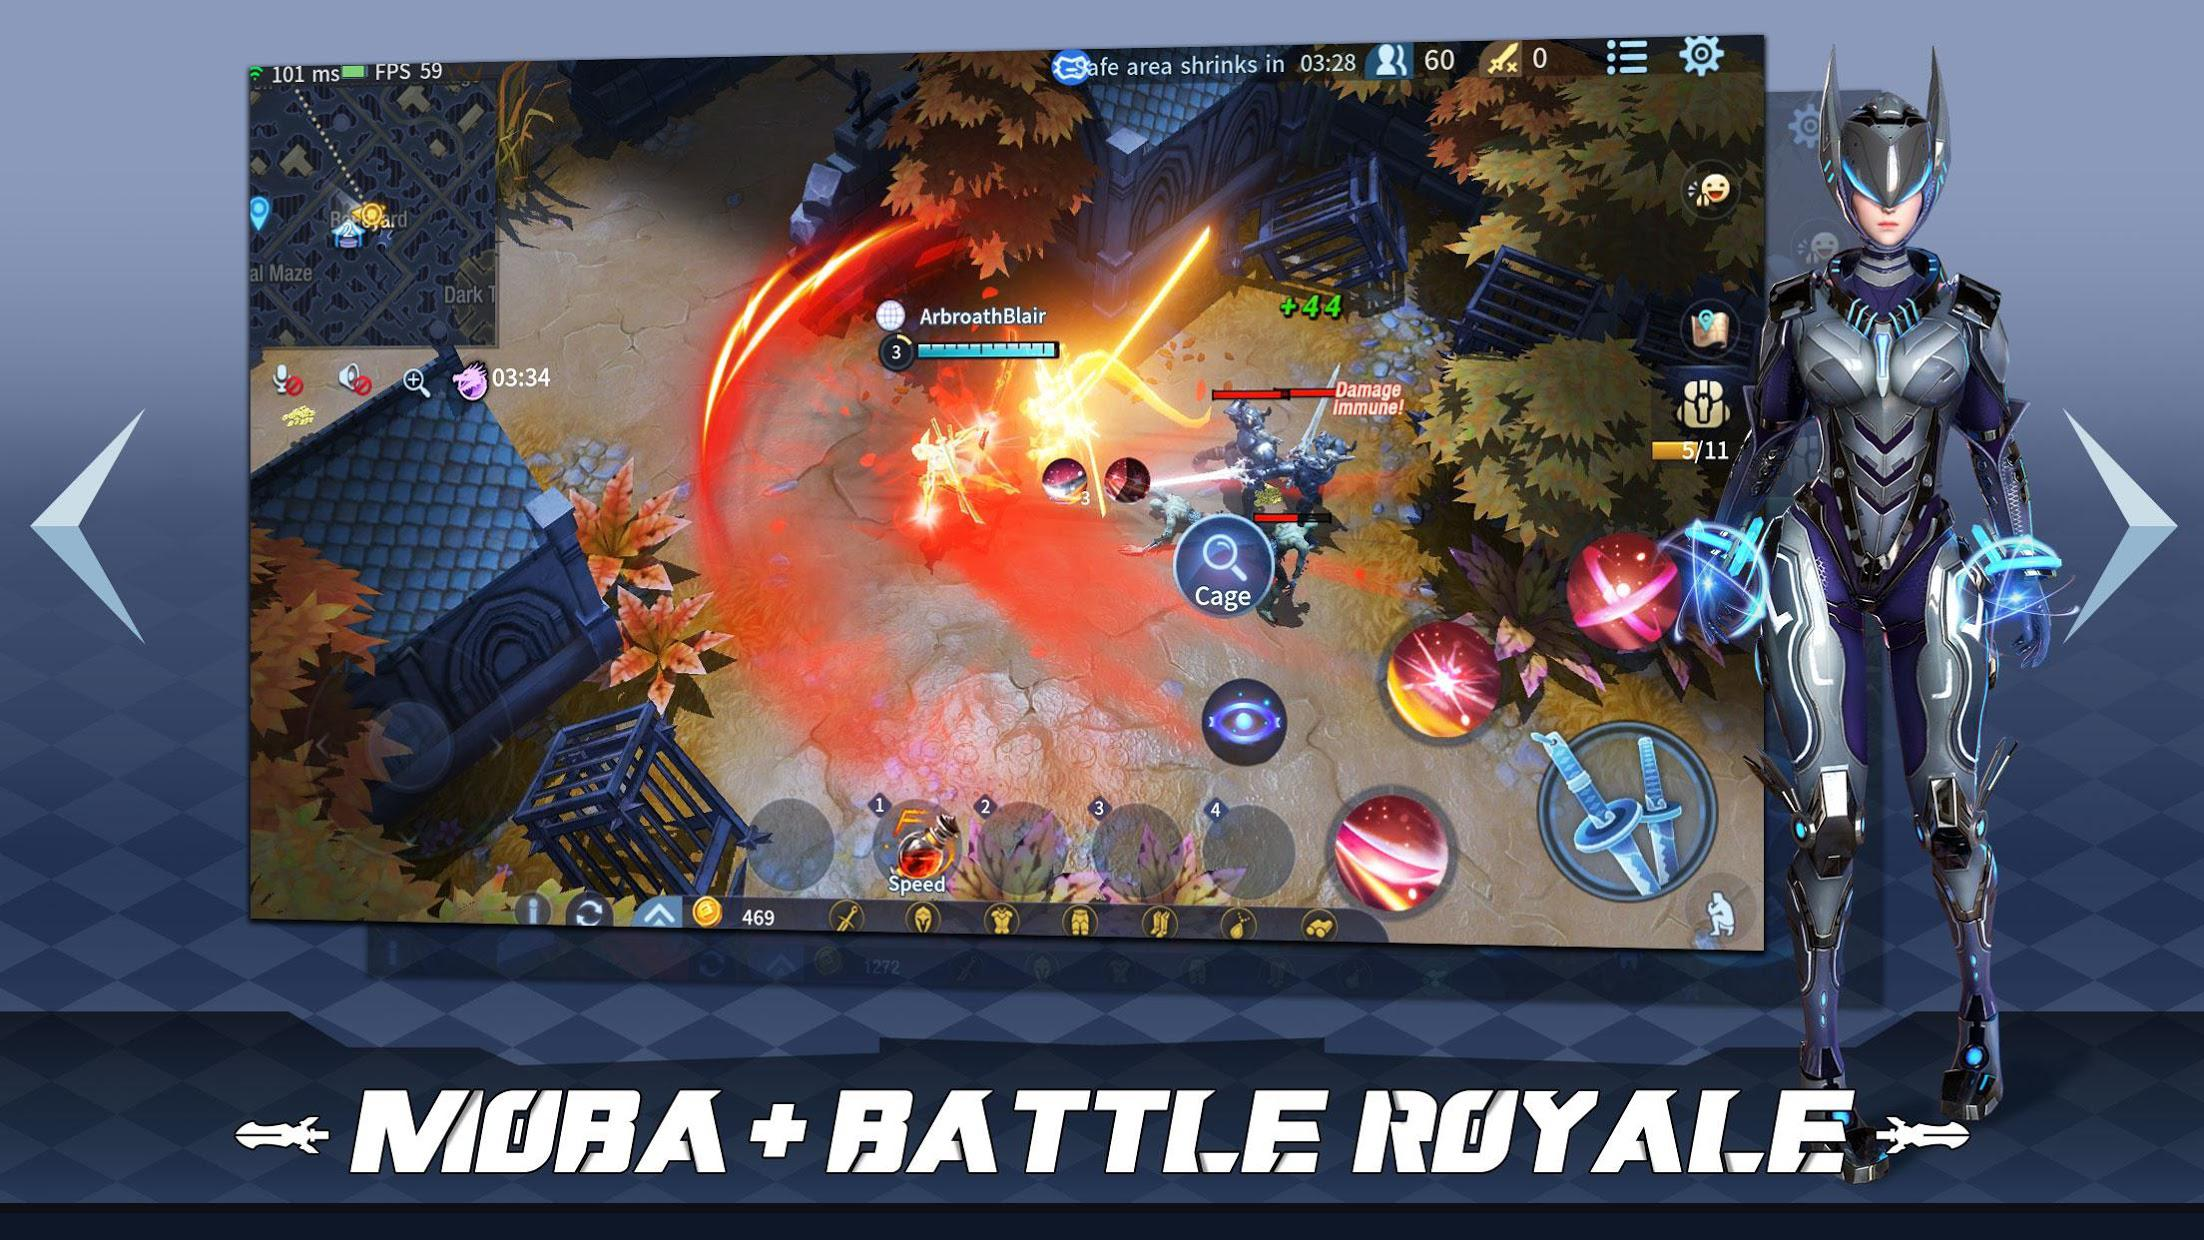 Survival Heroes - MOBA Battle Royale 游戏截图2